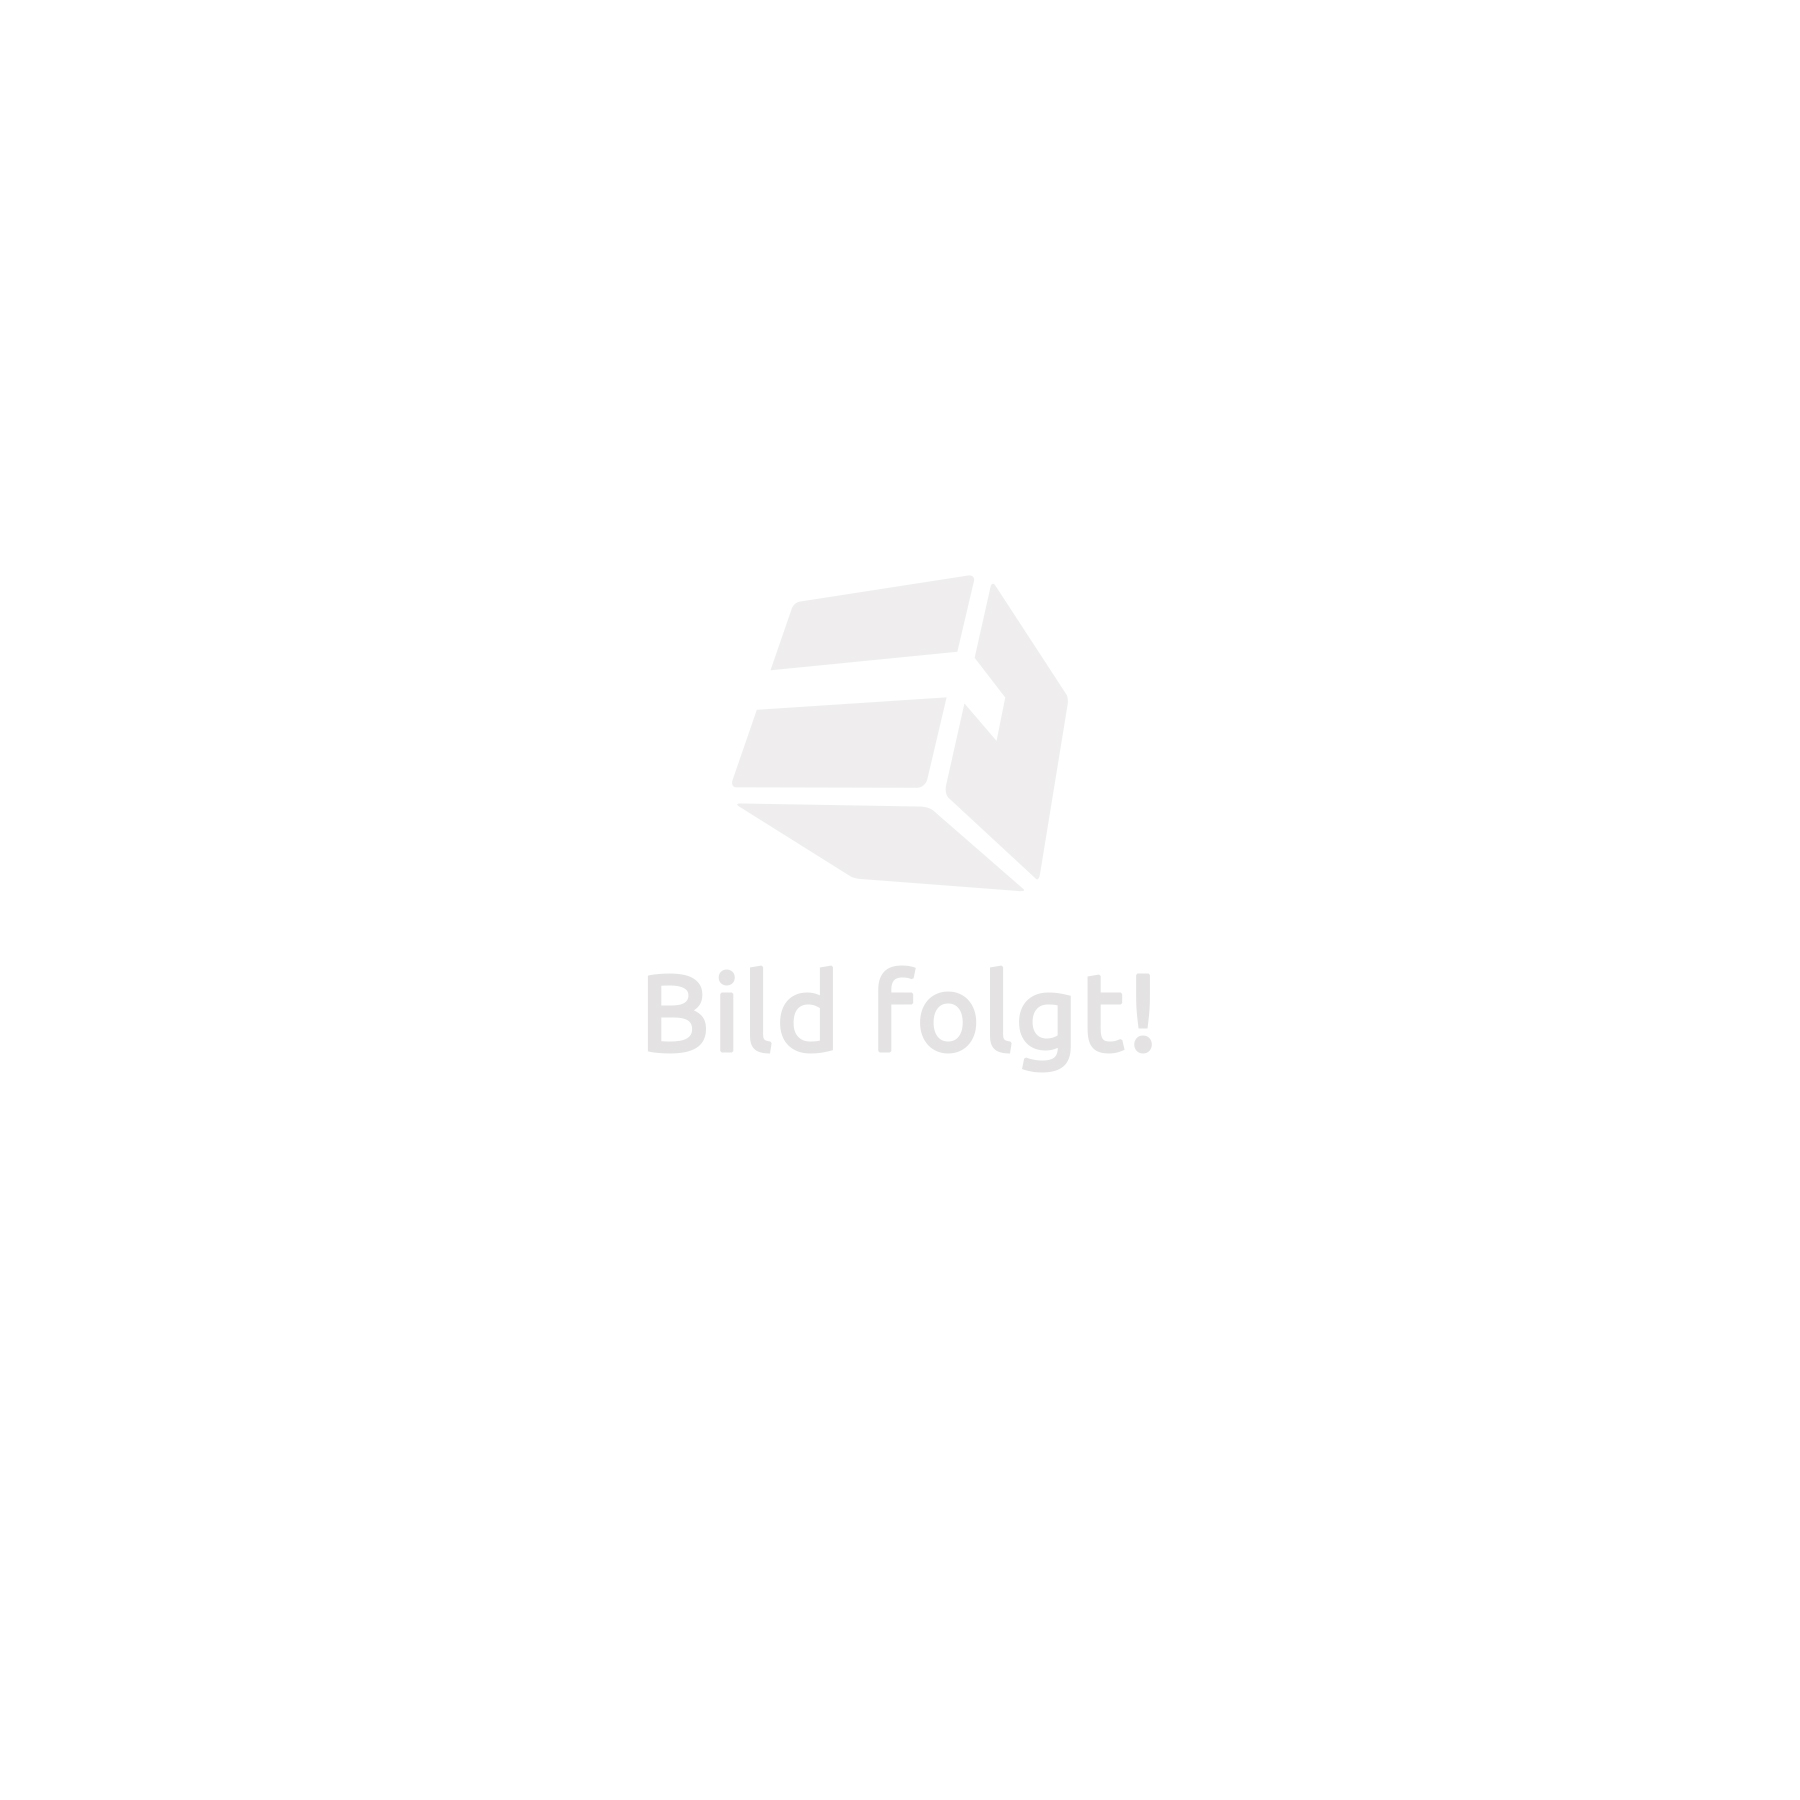 Floating shelves with 3 tiers model 3